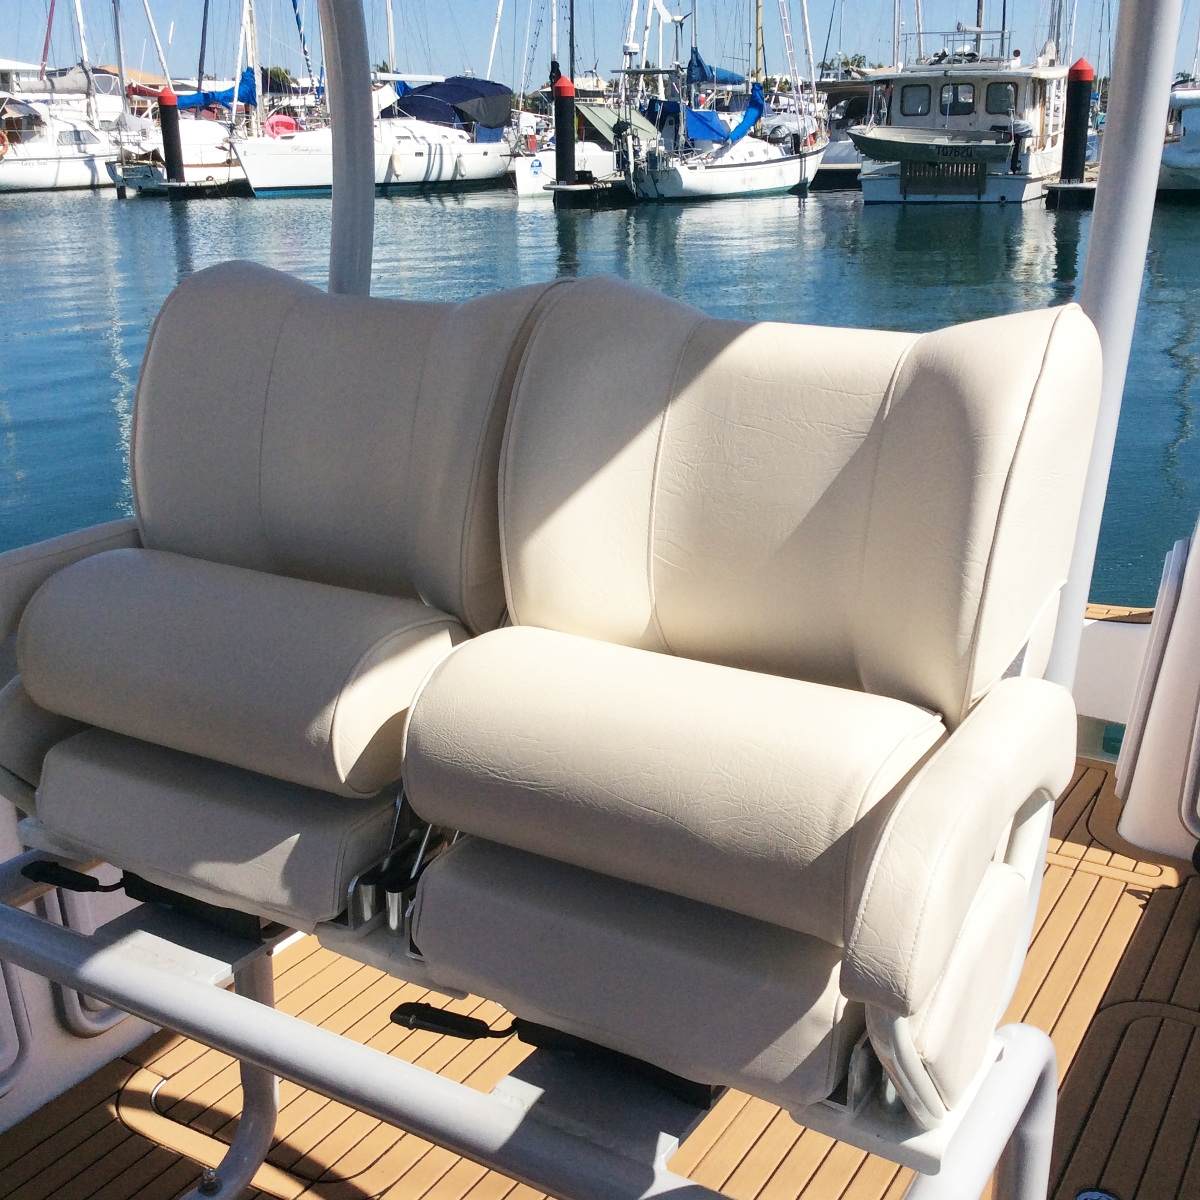 seats stand up-s RZ.jpg